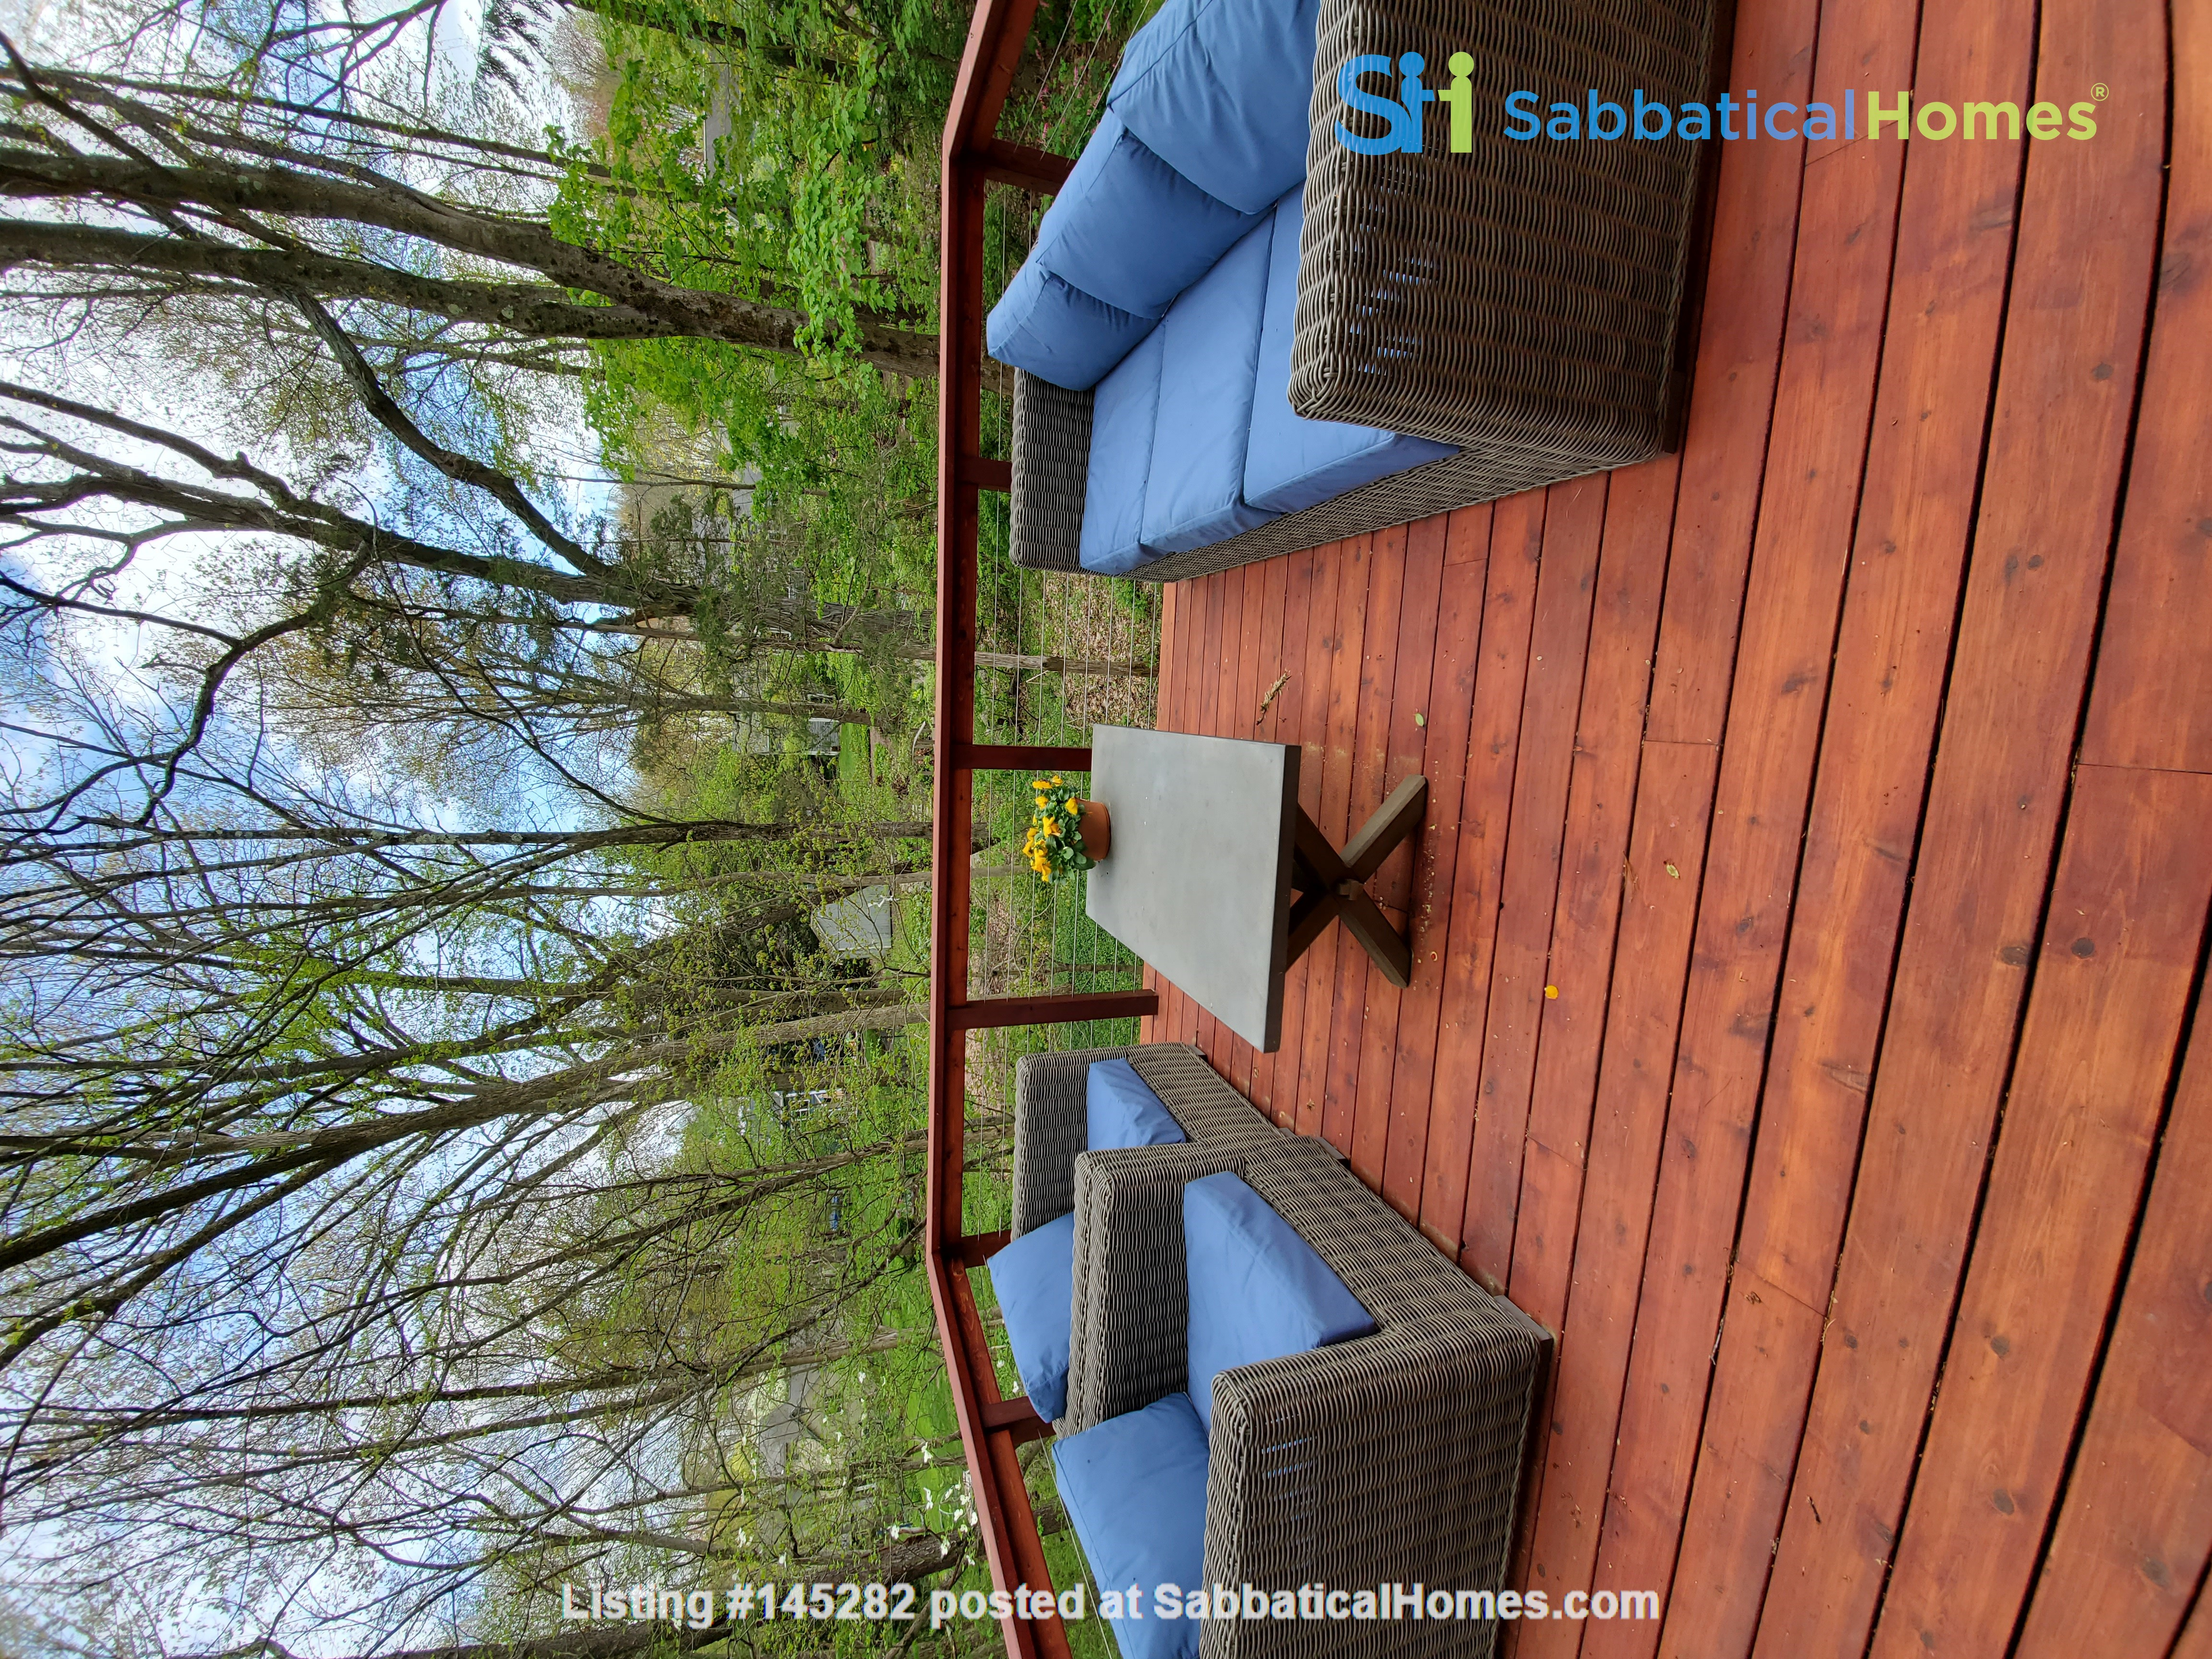 Spacious, Peaceful Getaway in Beautiful Amherst, MA, 4 BR 3.5 ba Home Rental in Amherst, Massachusetts, United States 1